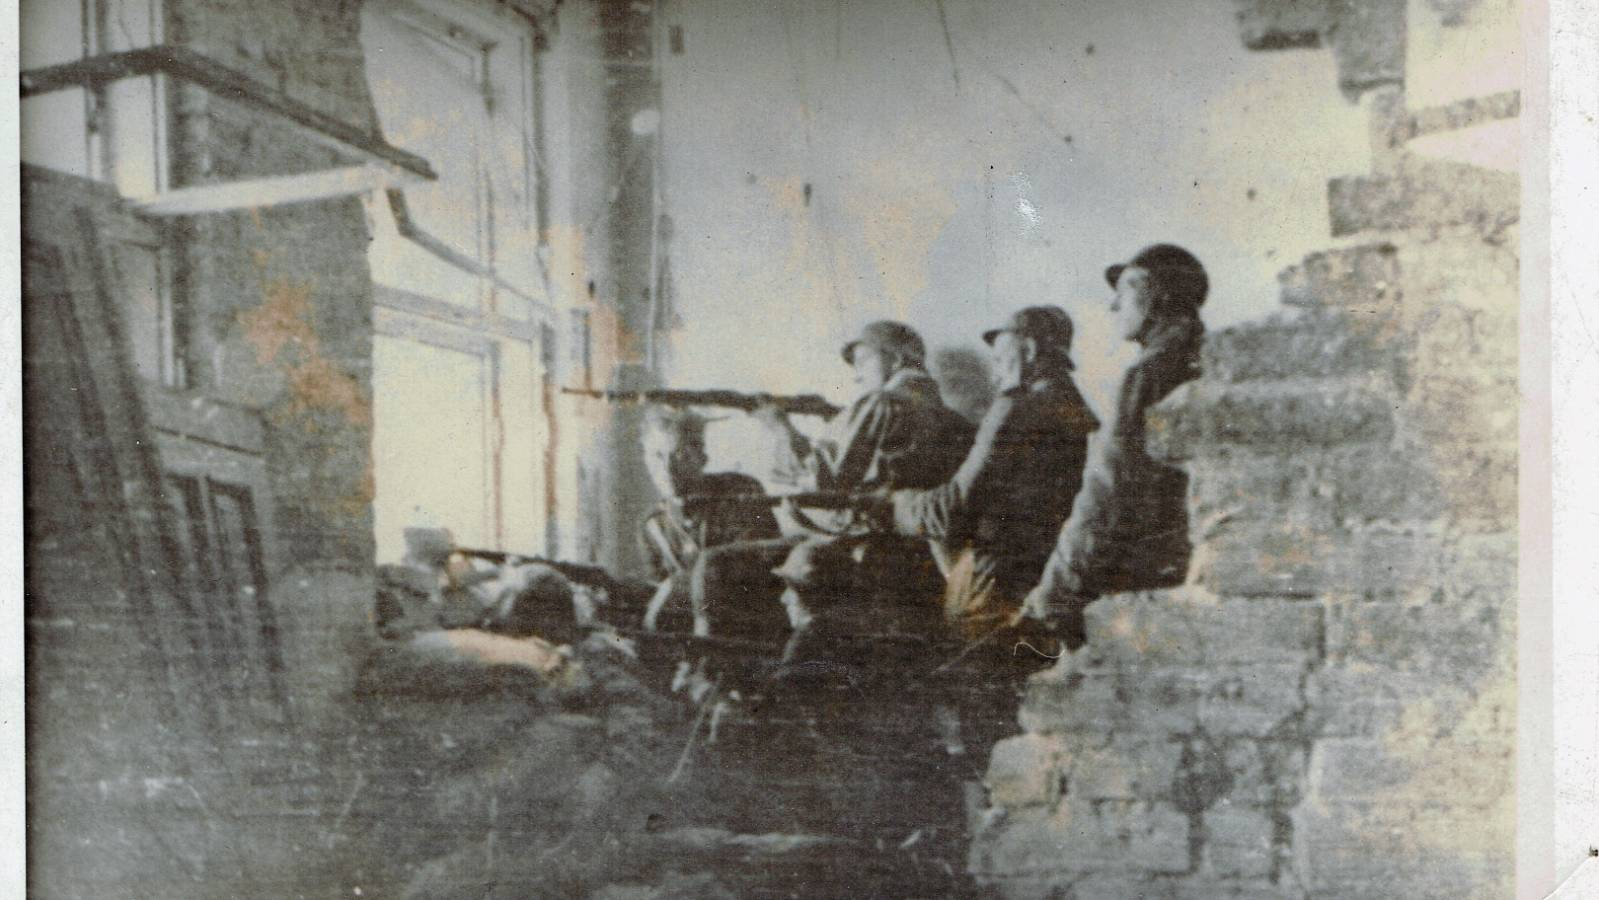 WWII picture - soldiers shooting from inside building